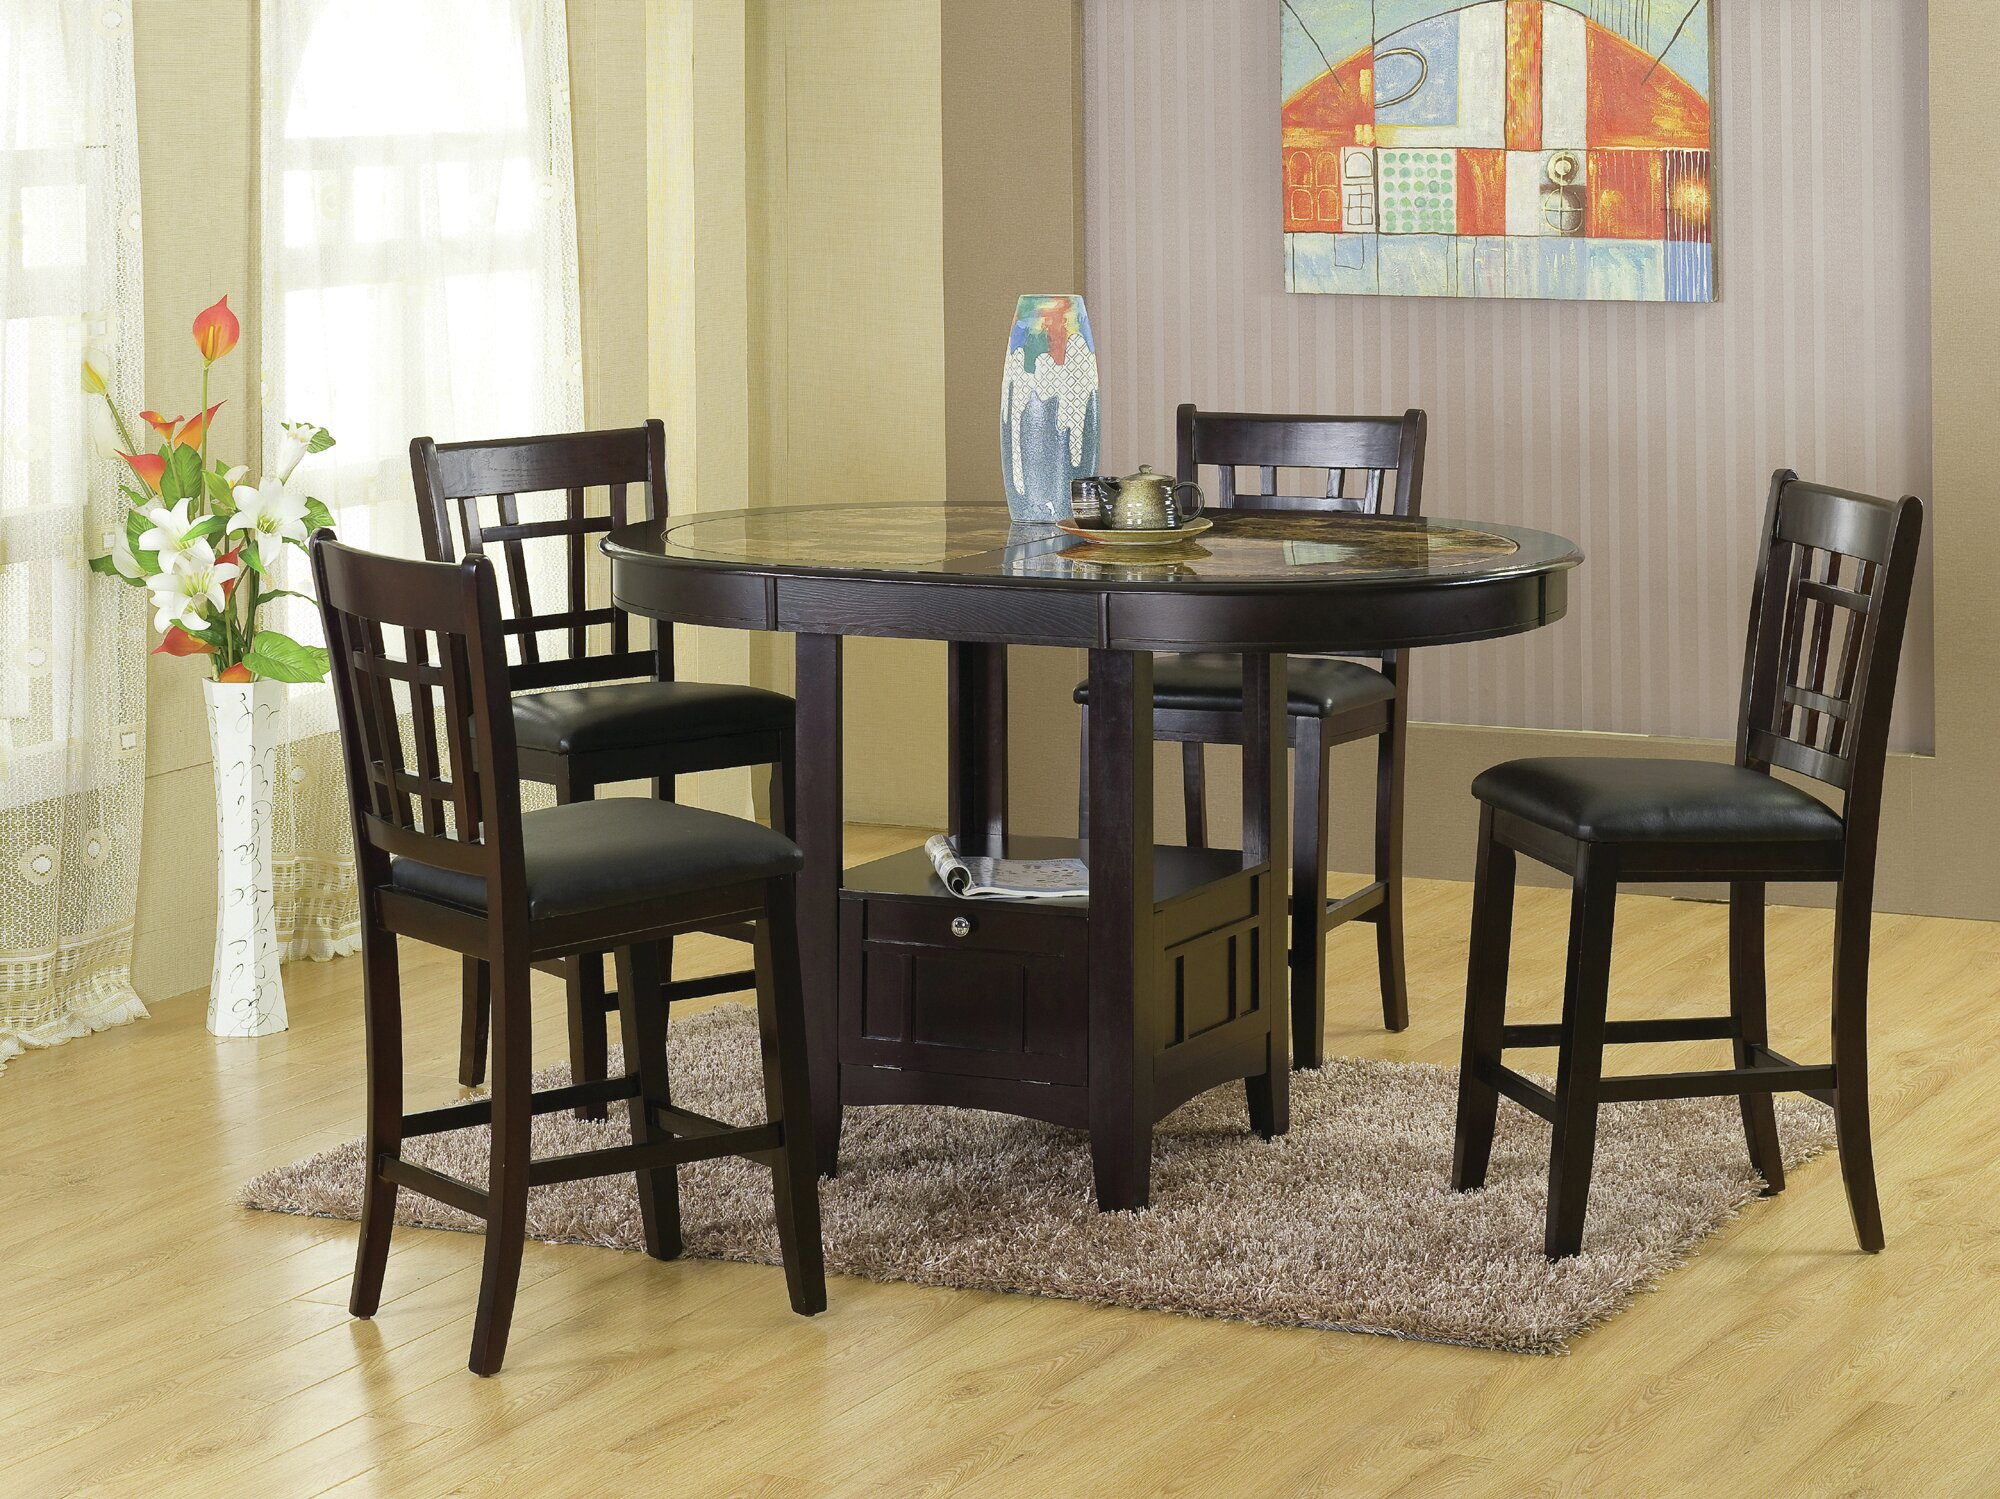 Hazelwood Home Charleston 5 Piece Dining Set | Wayfair